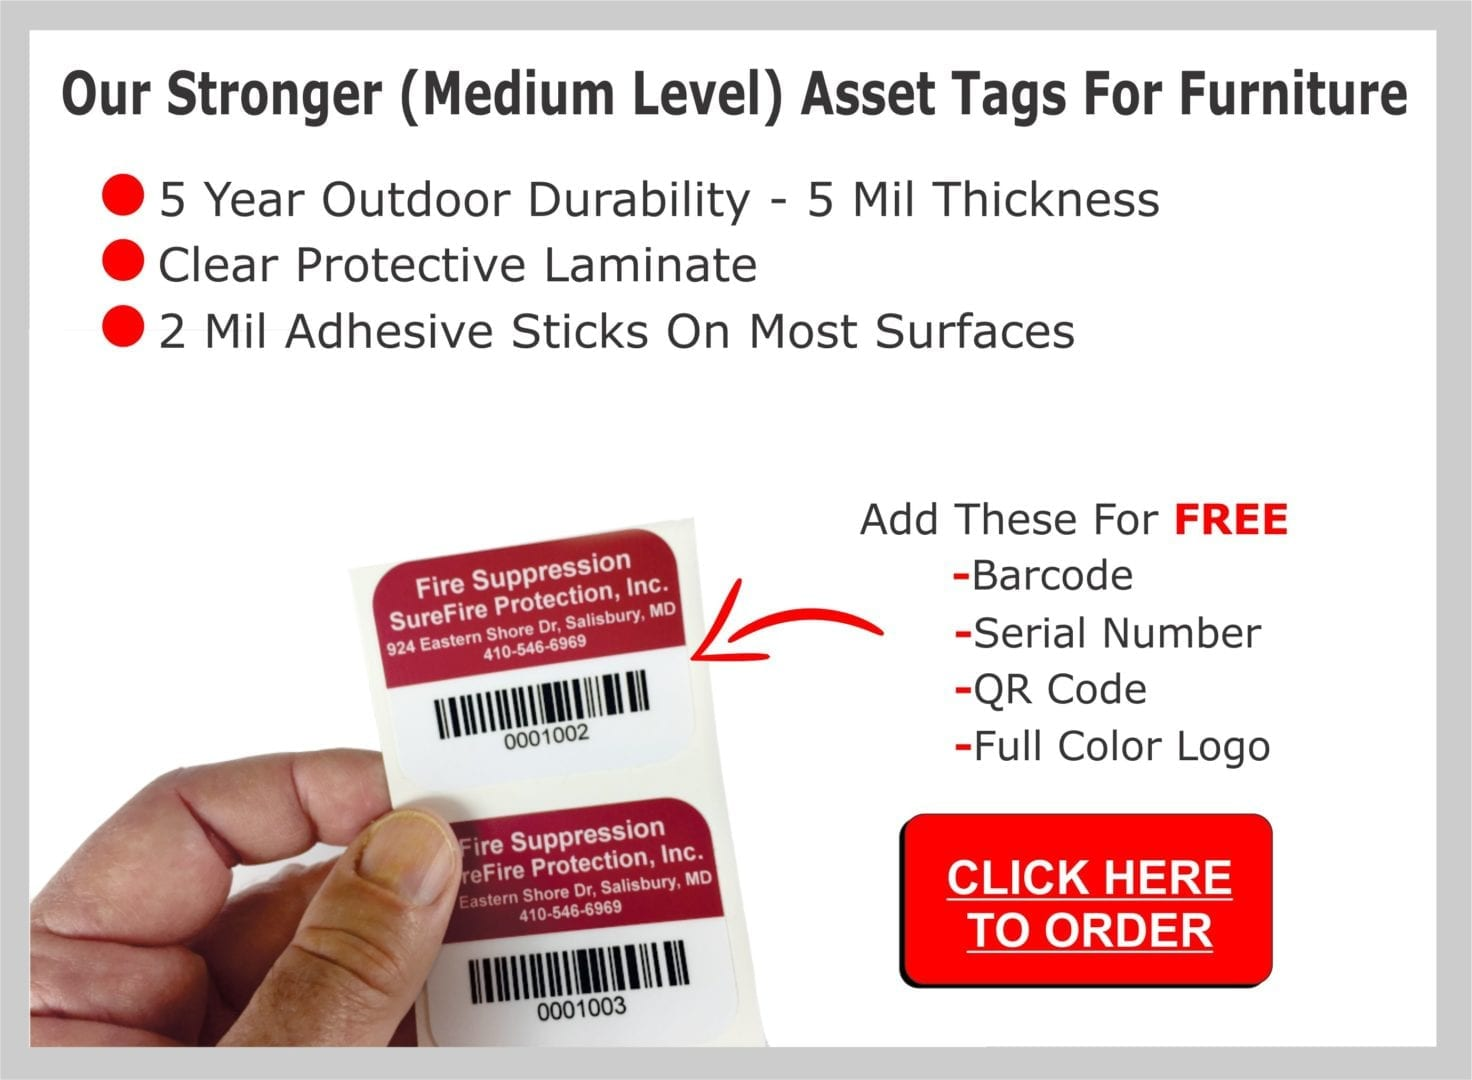 Details of our stronger level asset tags for furniture